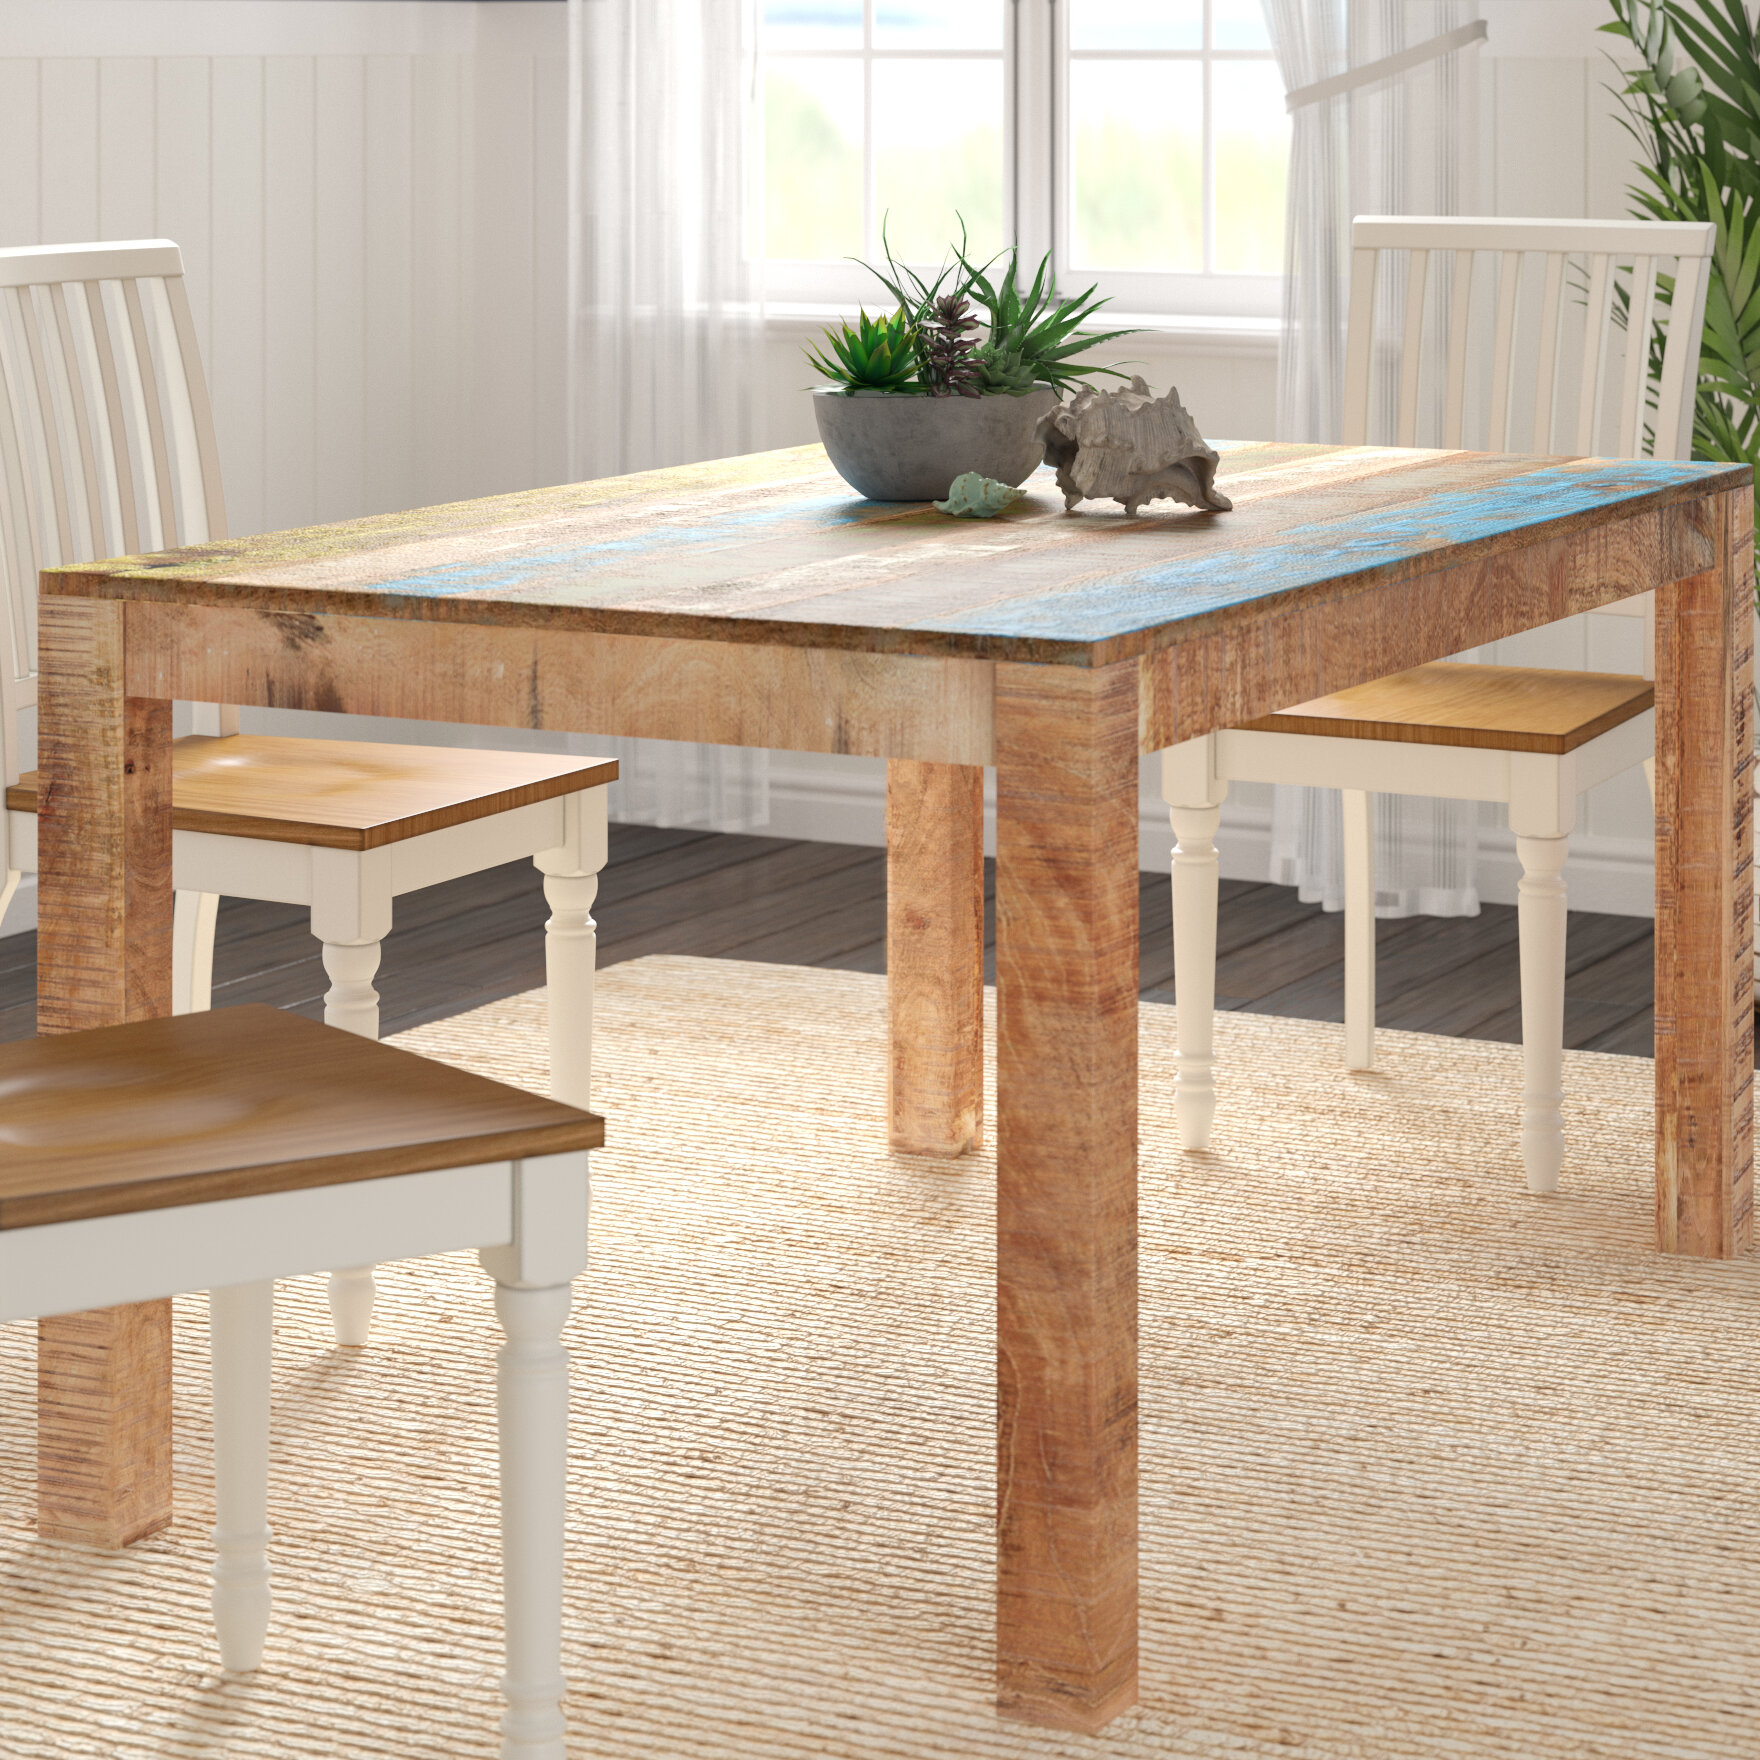 Highland Dunes Natascha Dining Table Reviews